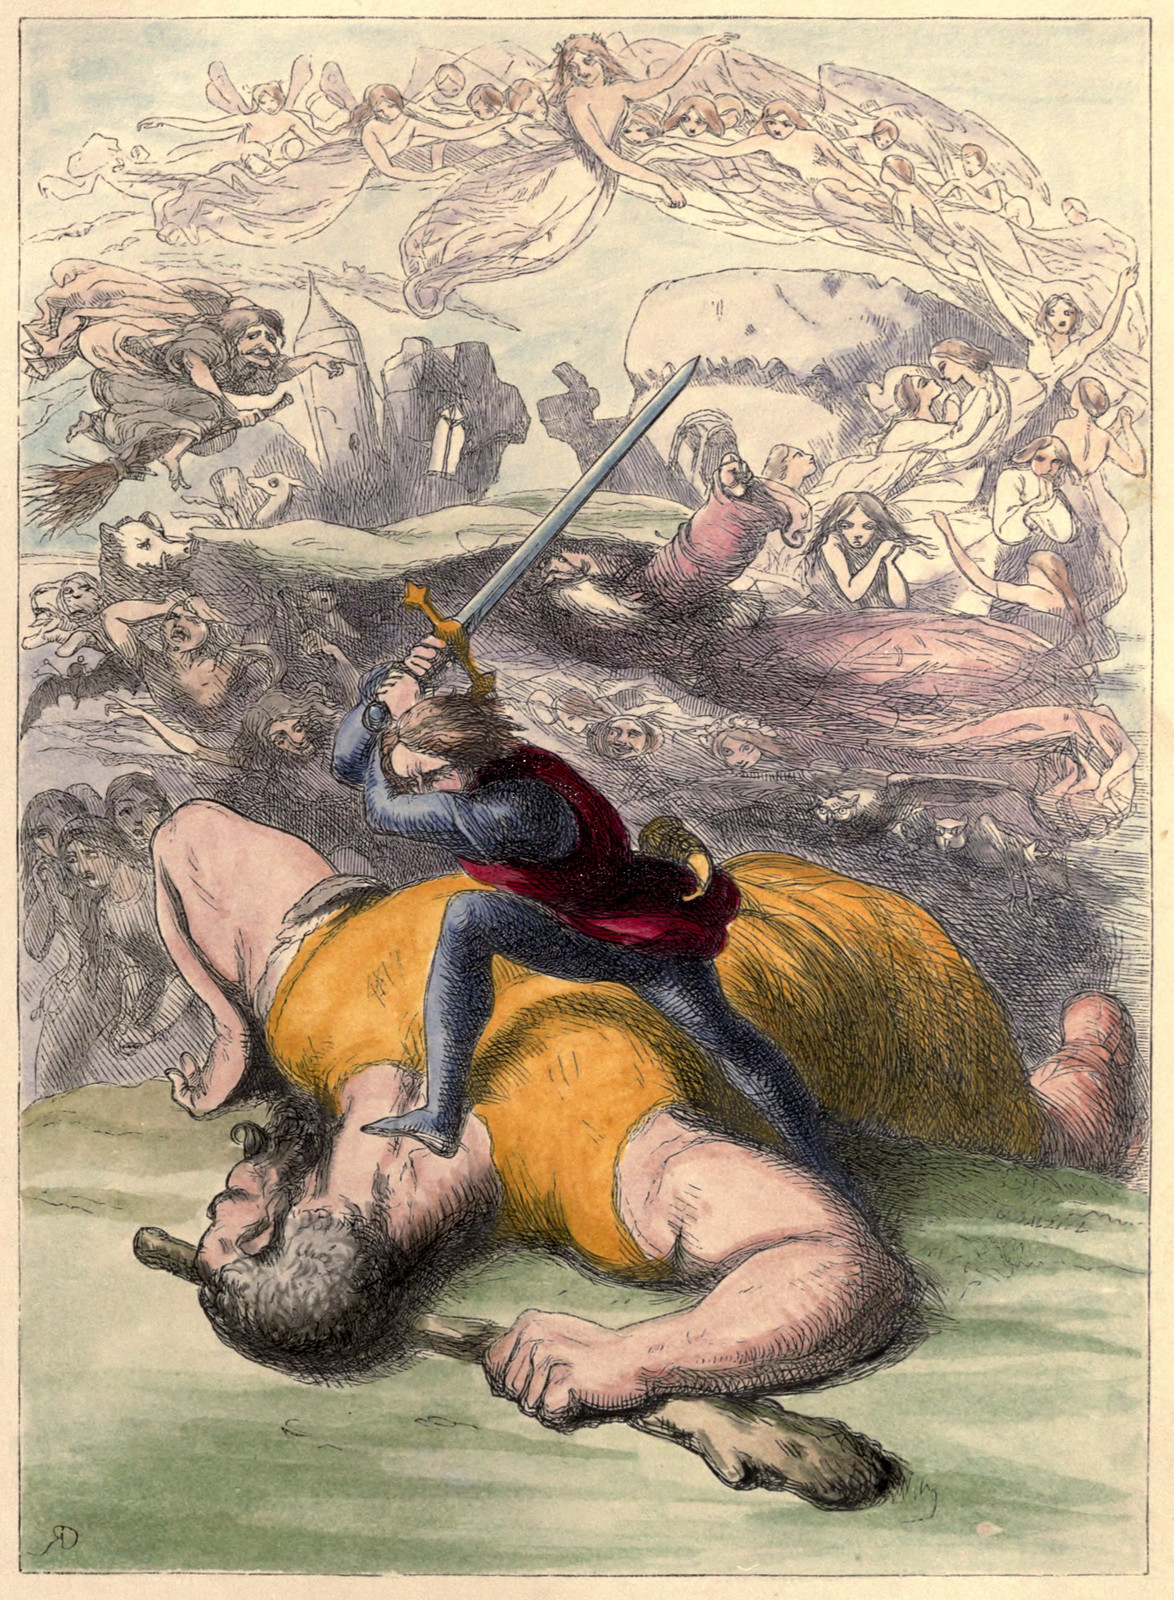 Richard Doyle - The Story of Jack and the Giant, 1851, Illustration 05